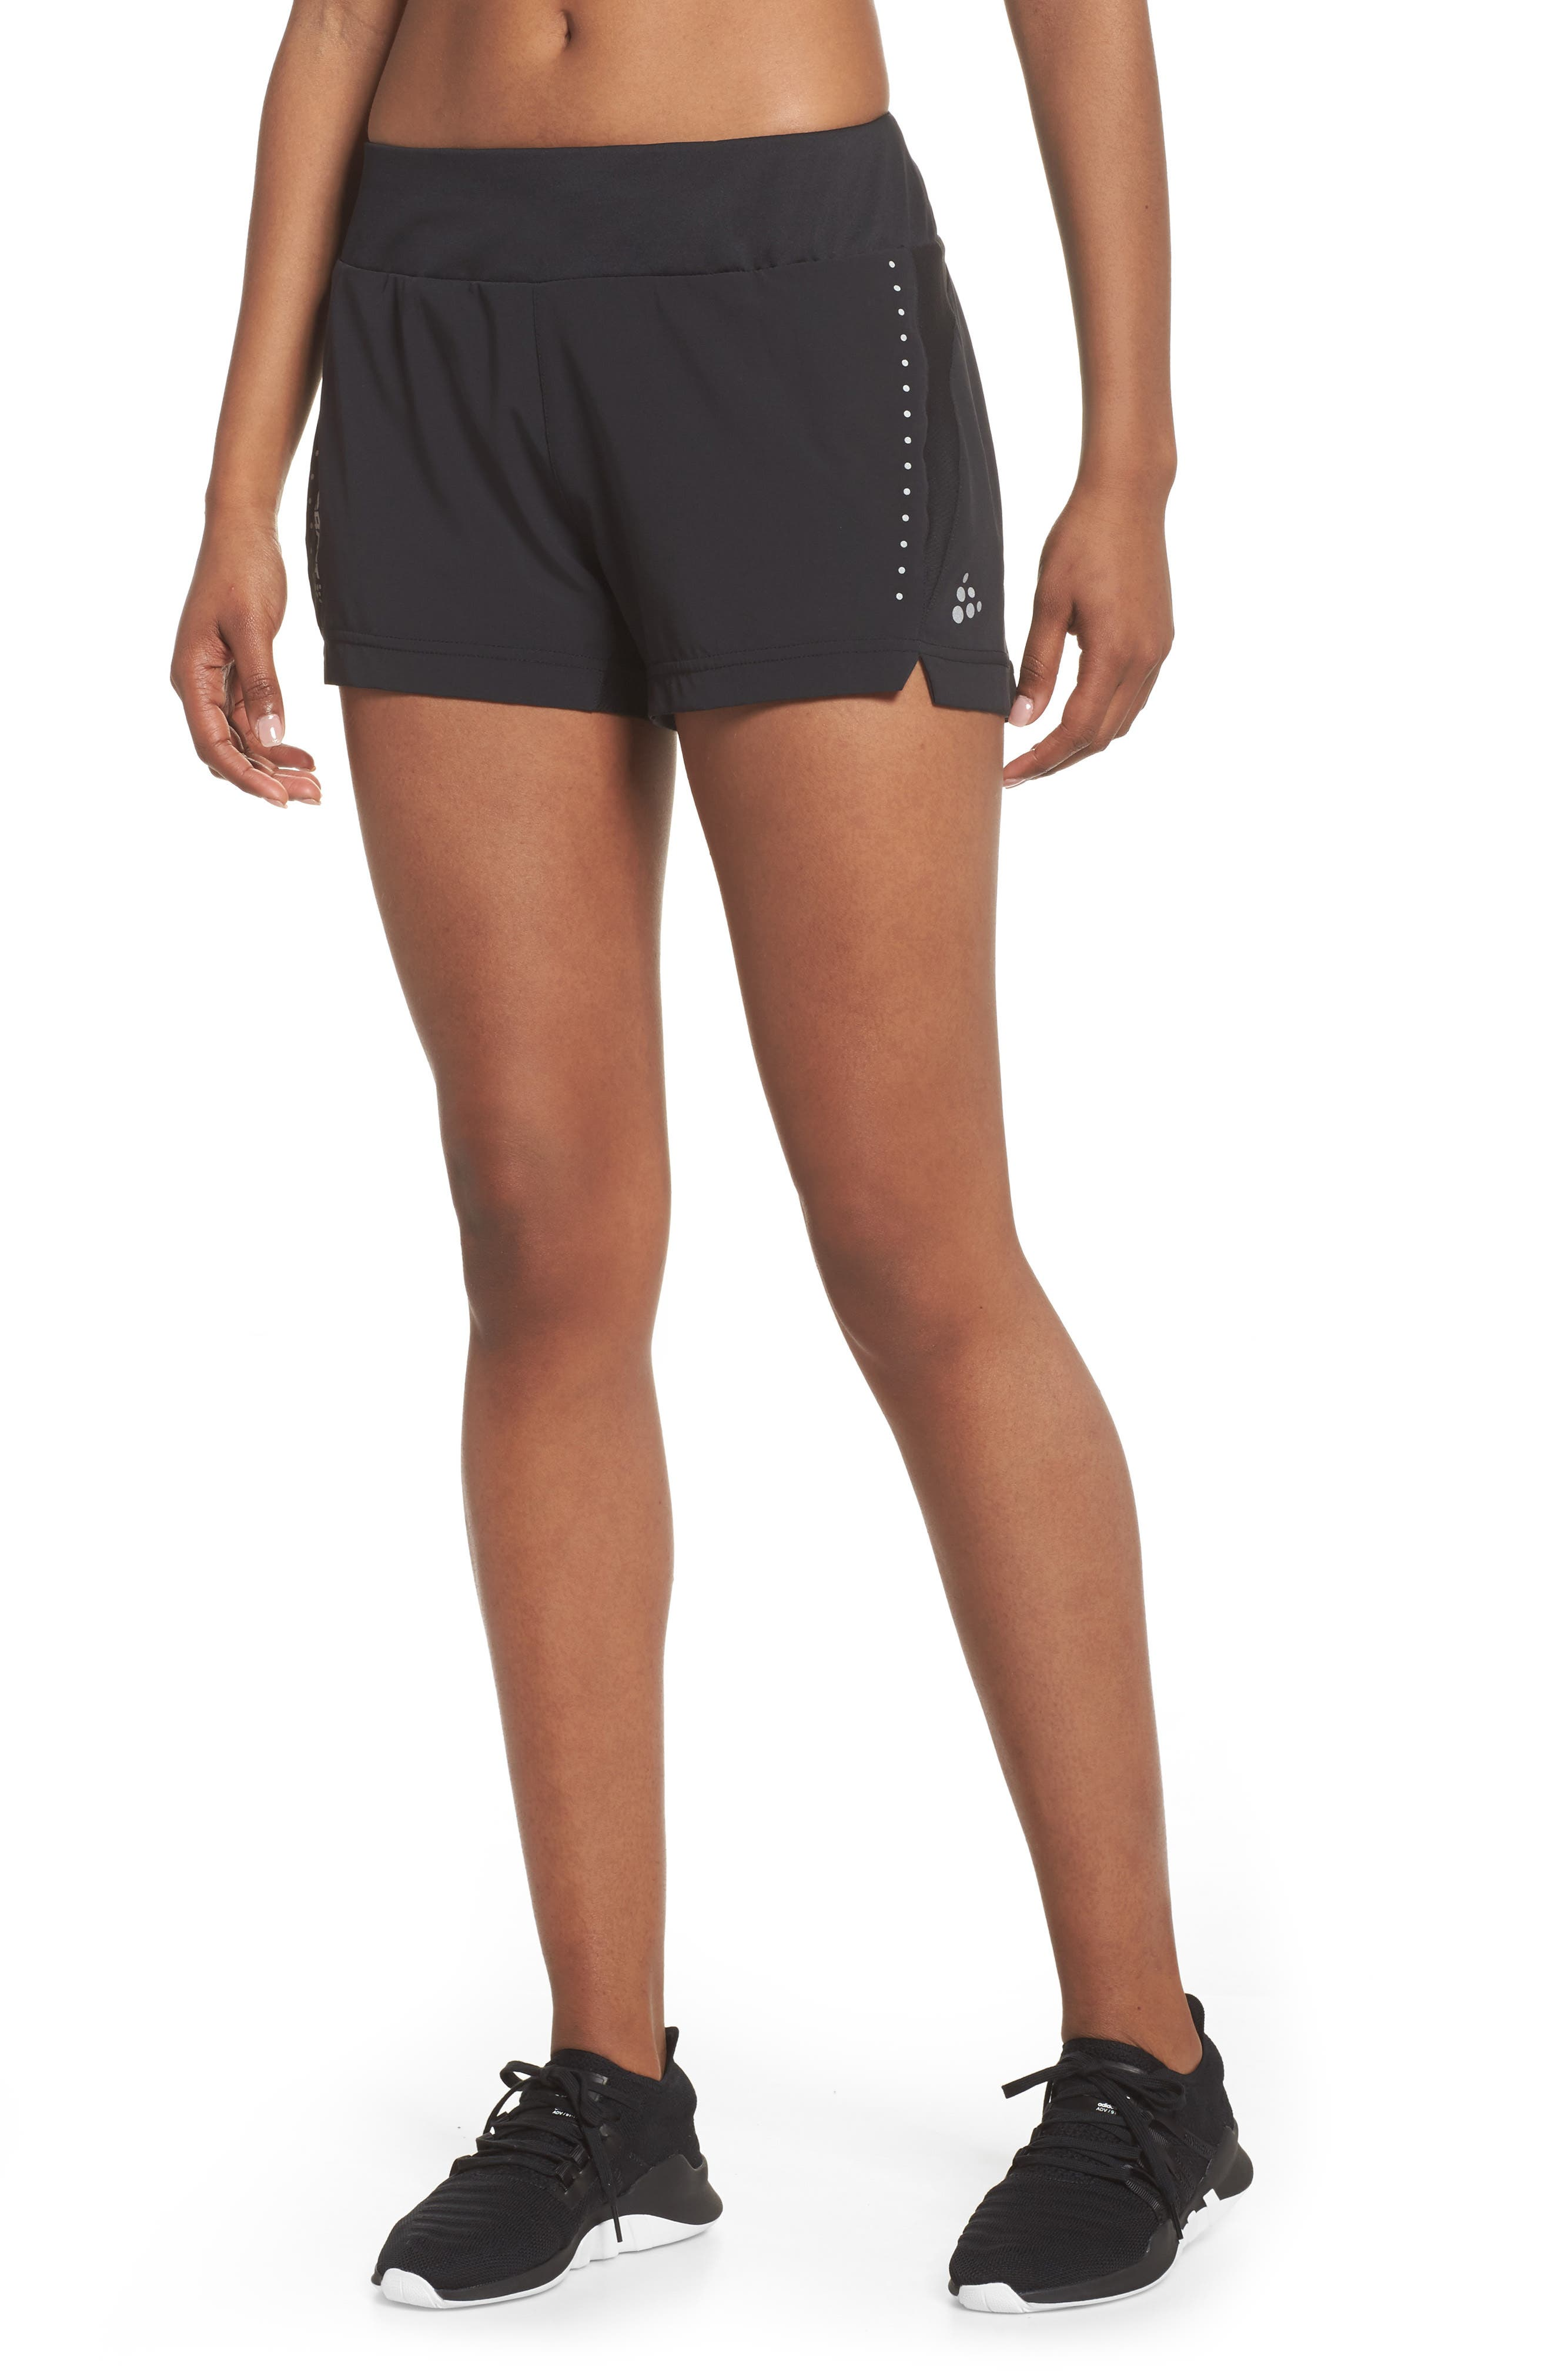 Essential Running Shorts,                         Main,                         color, Black